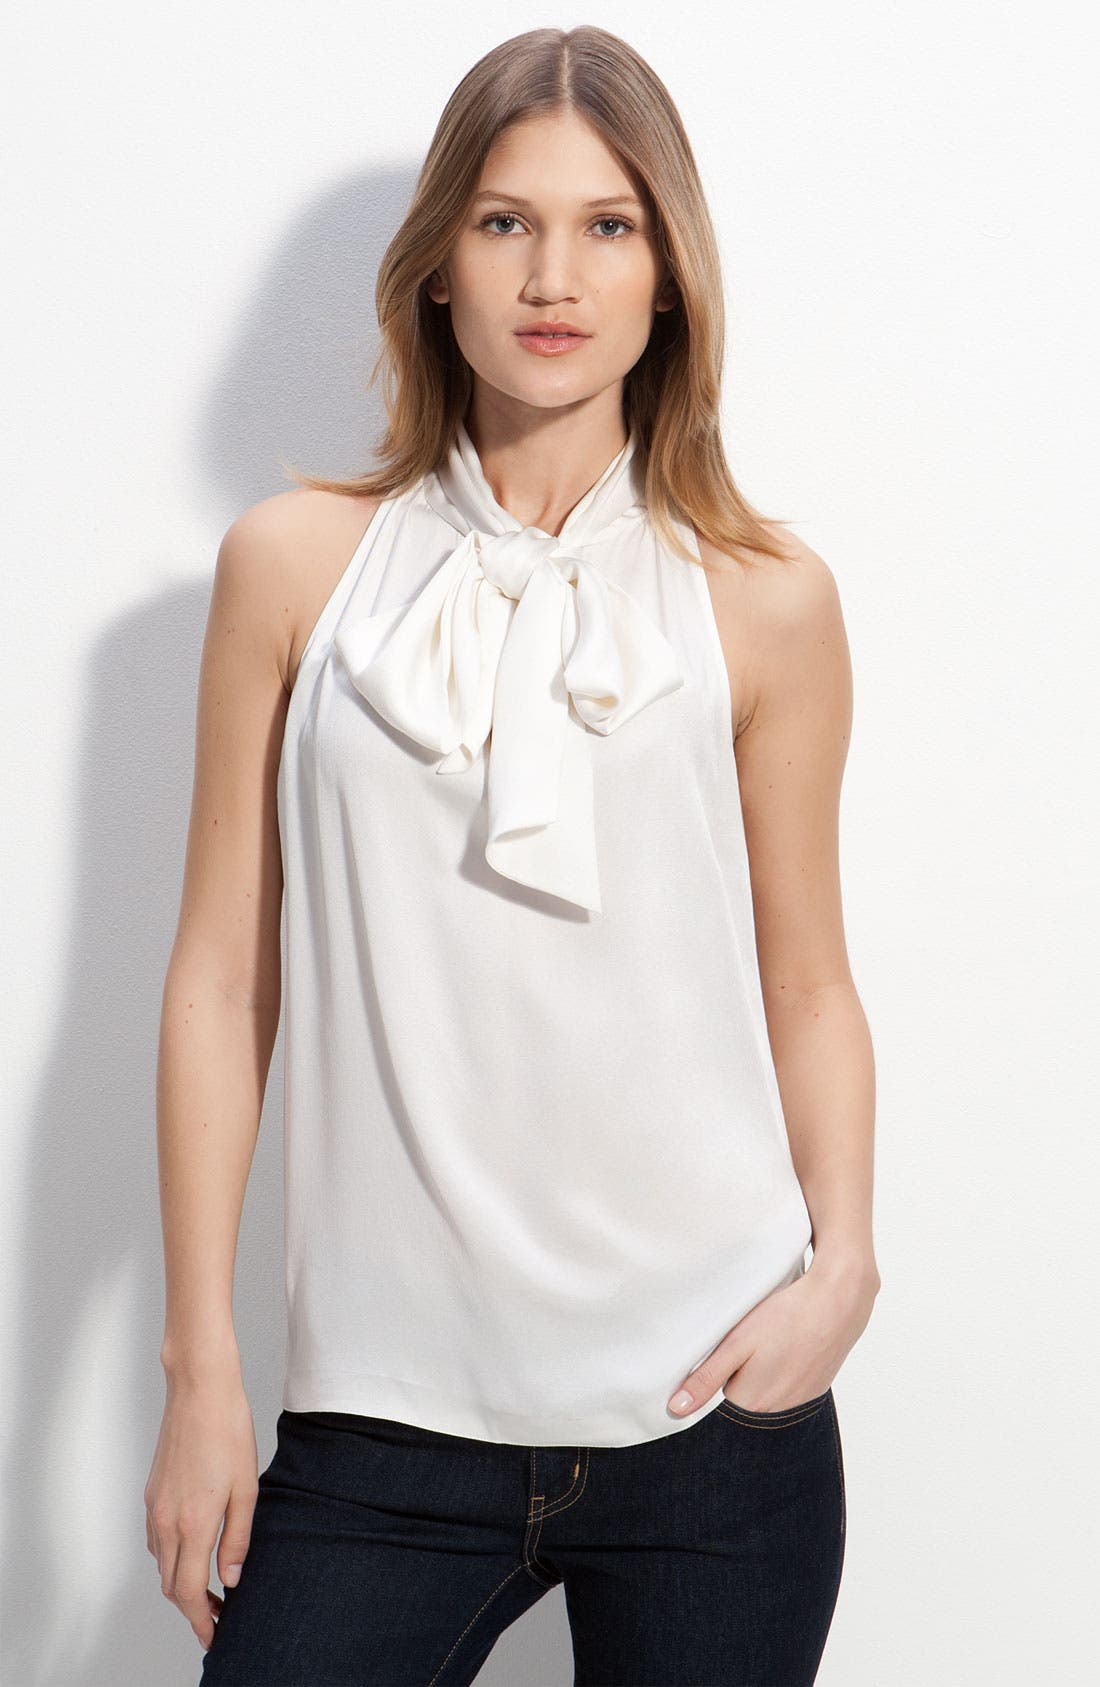 Alternate Image 1 Selected - kate spade new york 'adira' top